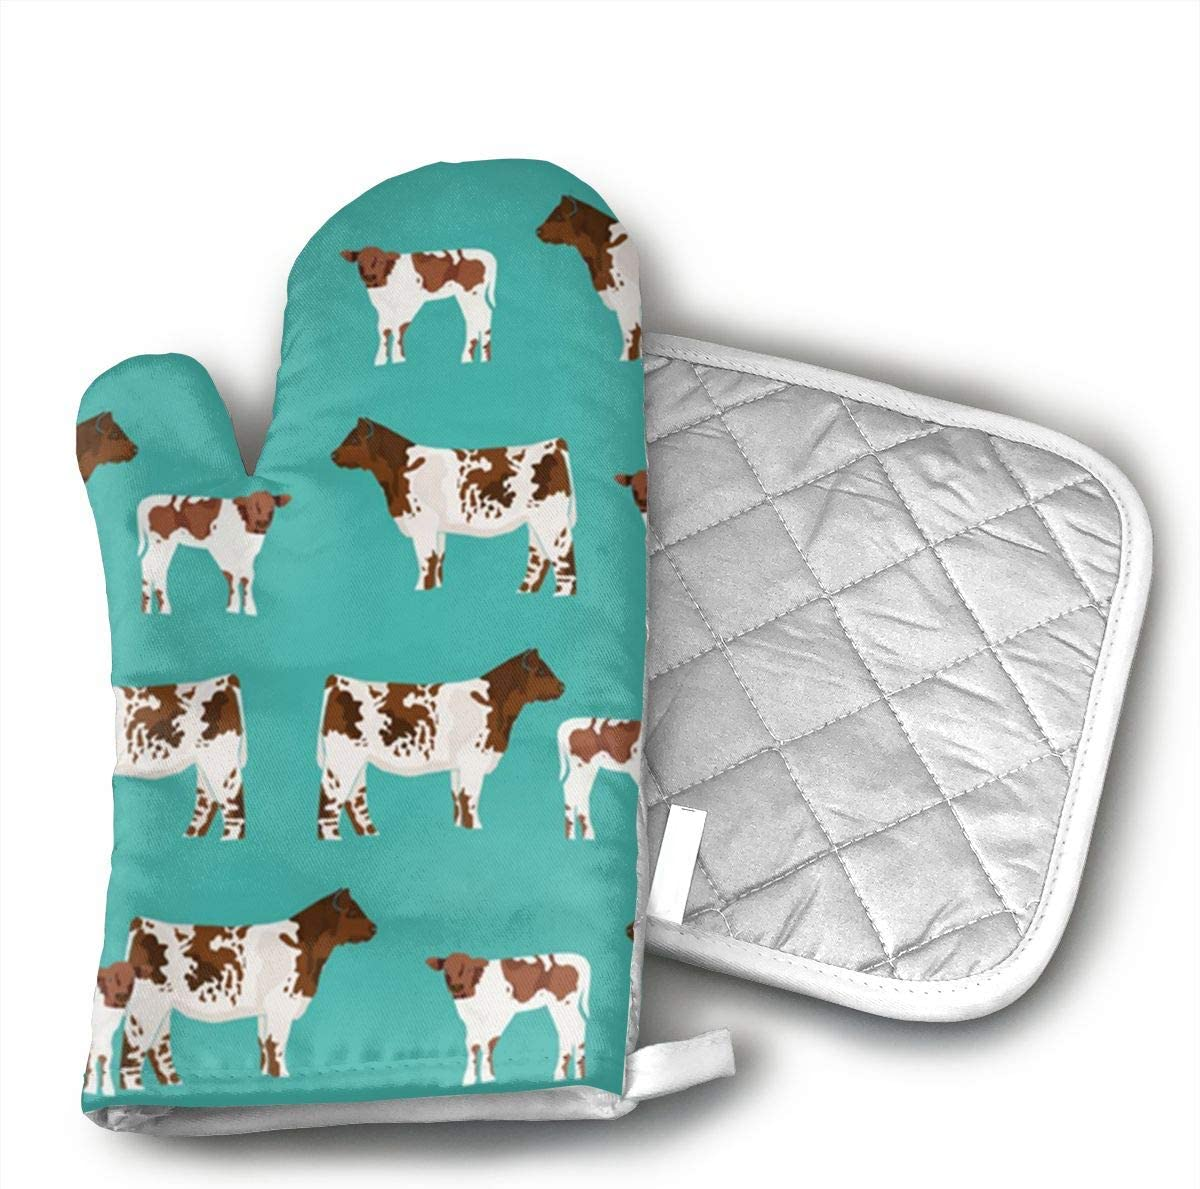 Shorthorn Cattle and Calf Kitchen Oven Mitts,Oven Mitts and Pot Holders,Heat Resistant with Quilted Cotton Lining,Cooking,Baking,Grilling,Barbecue